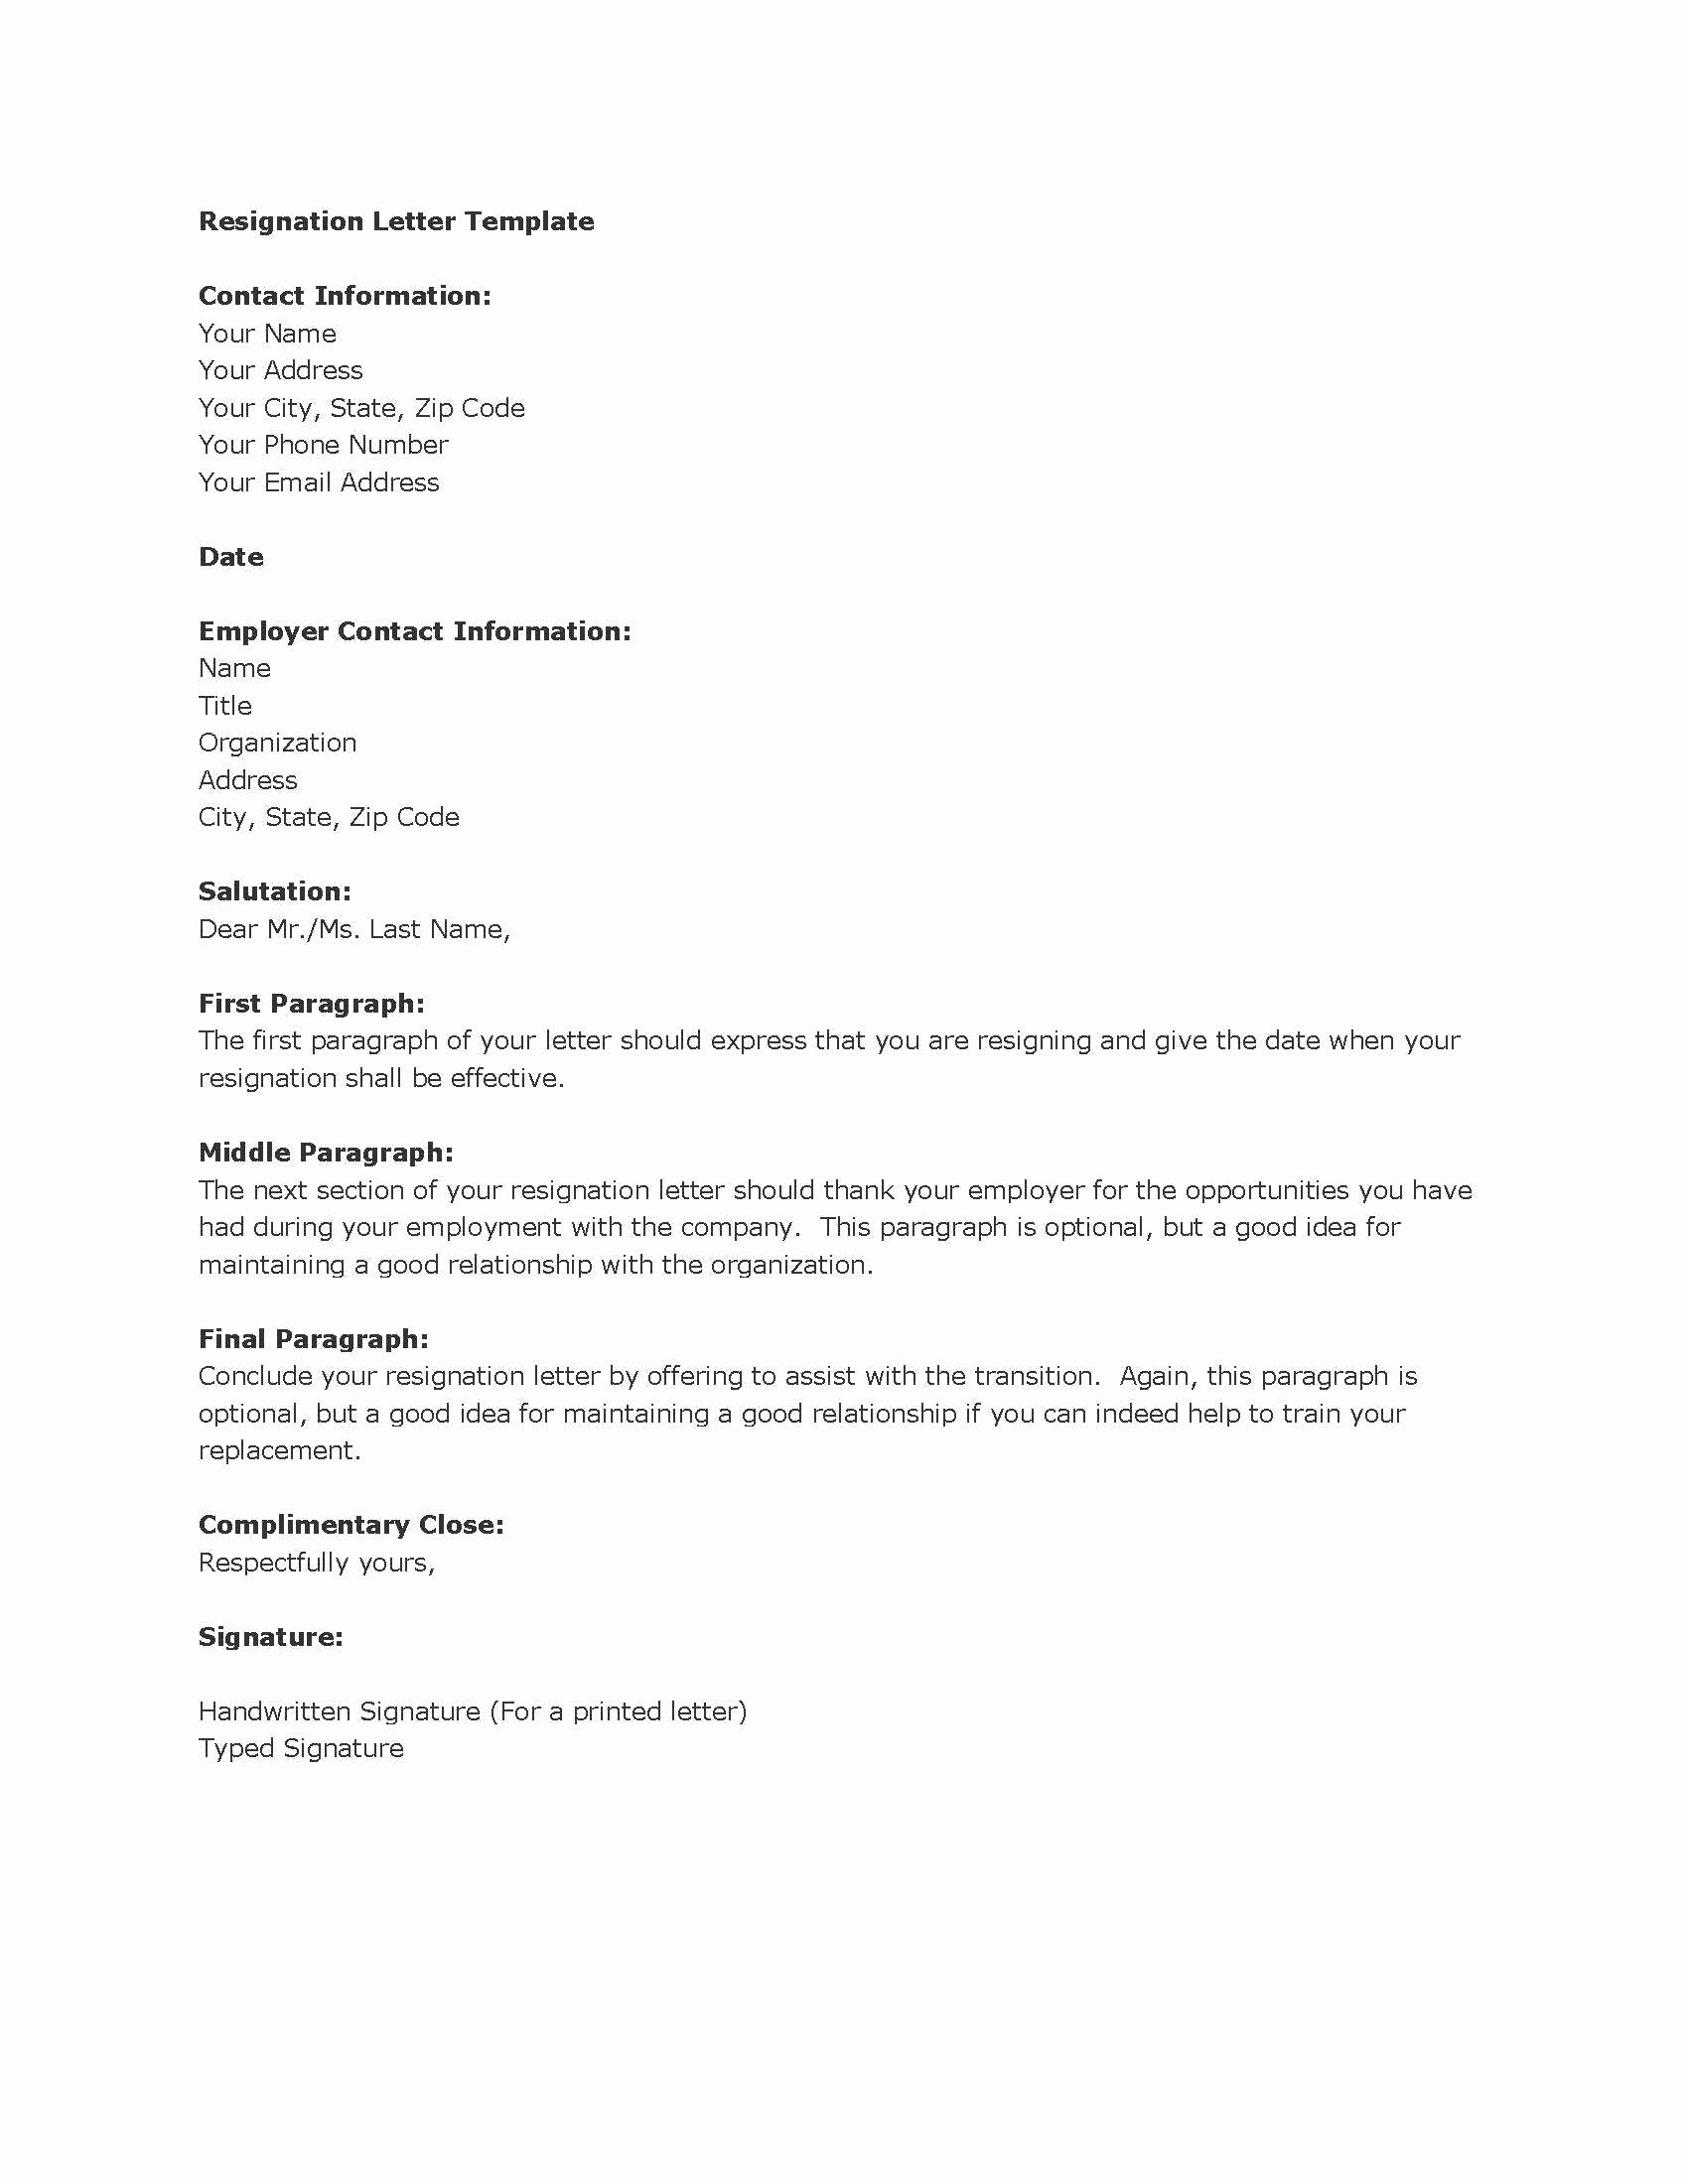 Letter Of Resignation Template Download Awesome Resignation Letter Samples Download Pdf Doc format